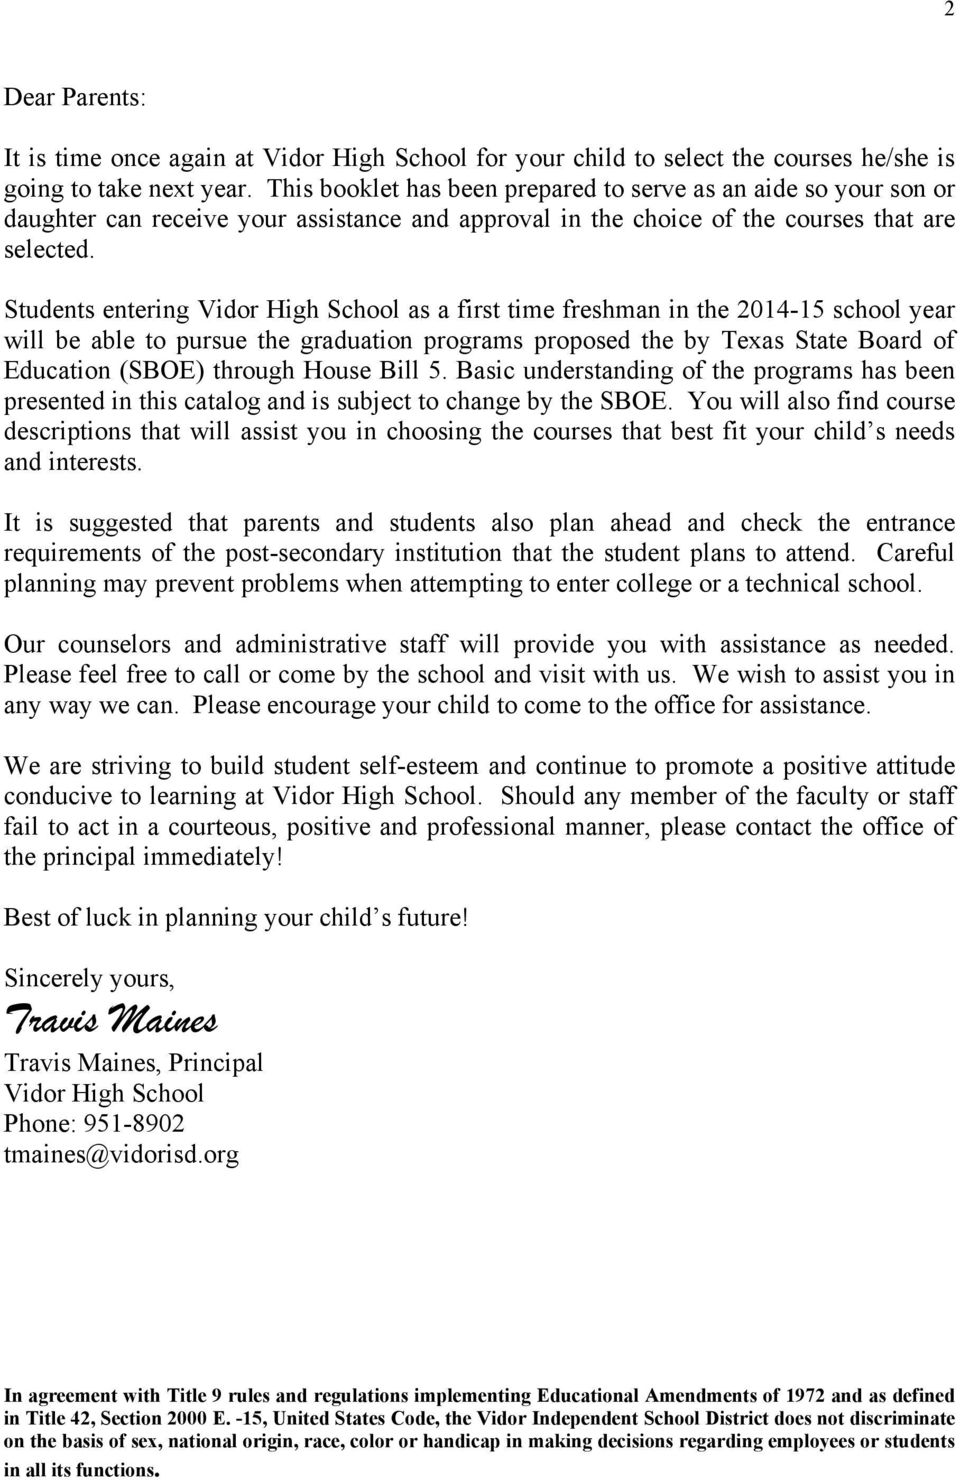 Students entering Vidor High School as a first time freshman in the 2014-15 school year will be able to pursue the graduation programs proposed the by Texas State Board of Education (SBOE) through